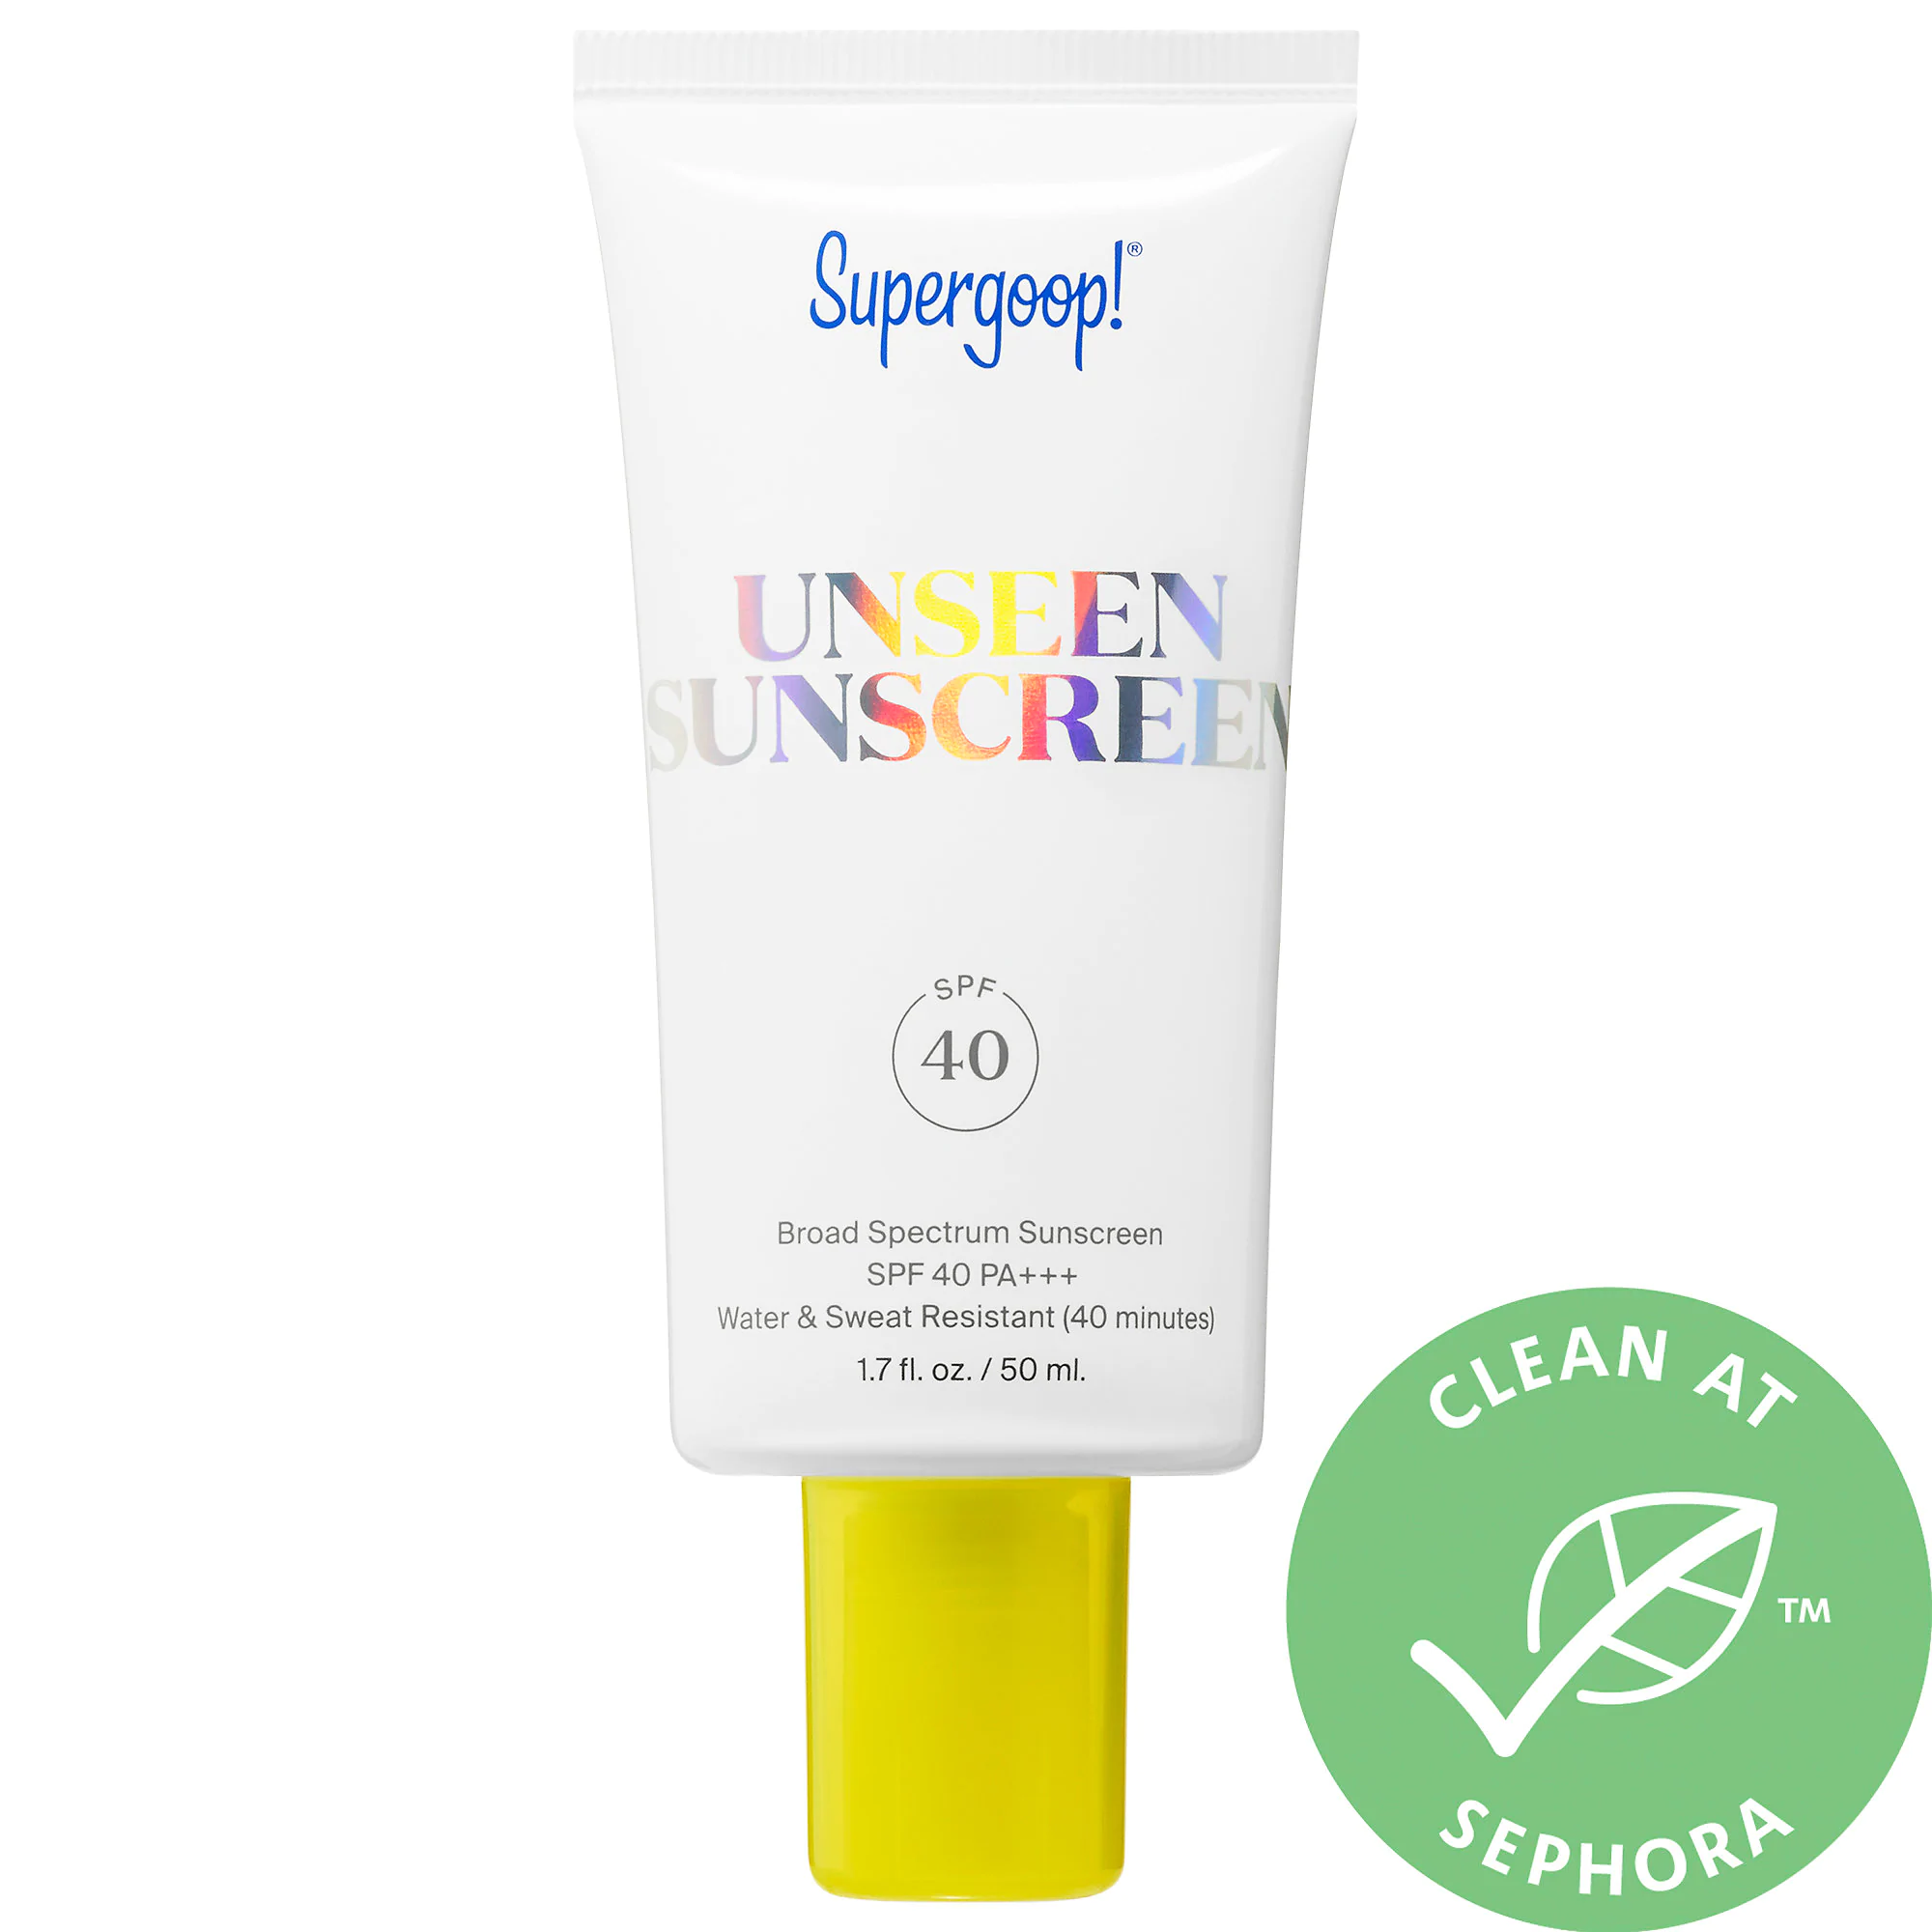 Supergoop!-Unseen Sunscreen Spf 40